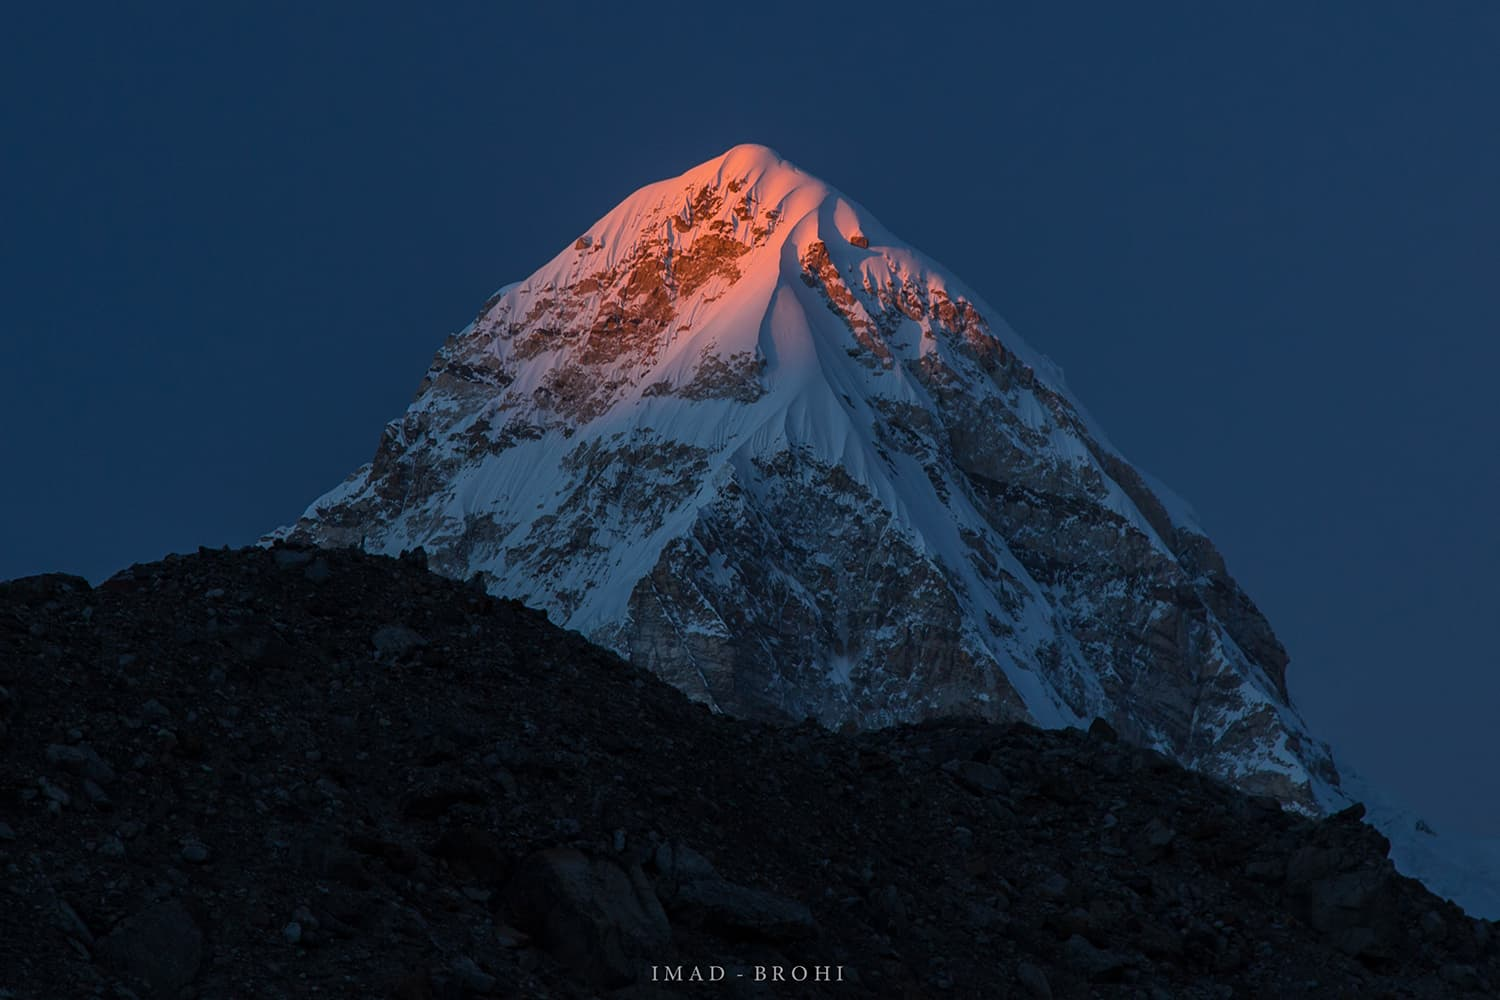 Day 8: Last light on Pumori (7,161m) from Lobuche Camp (4,900m).